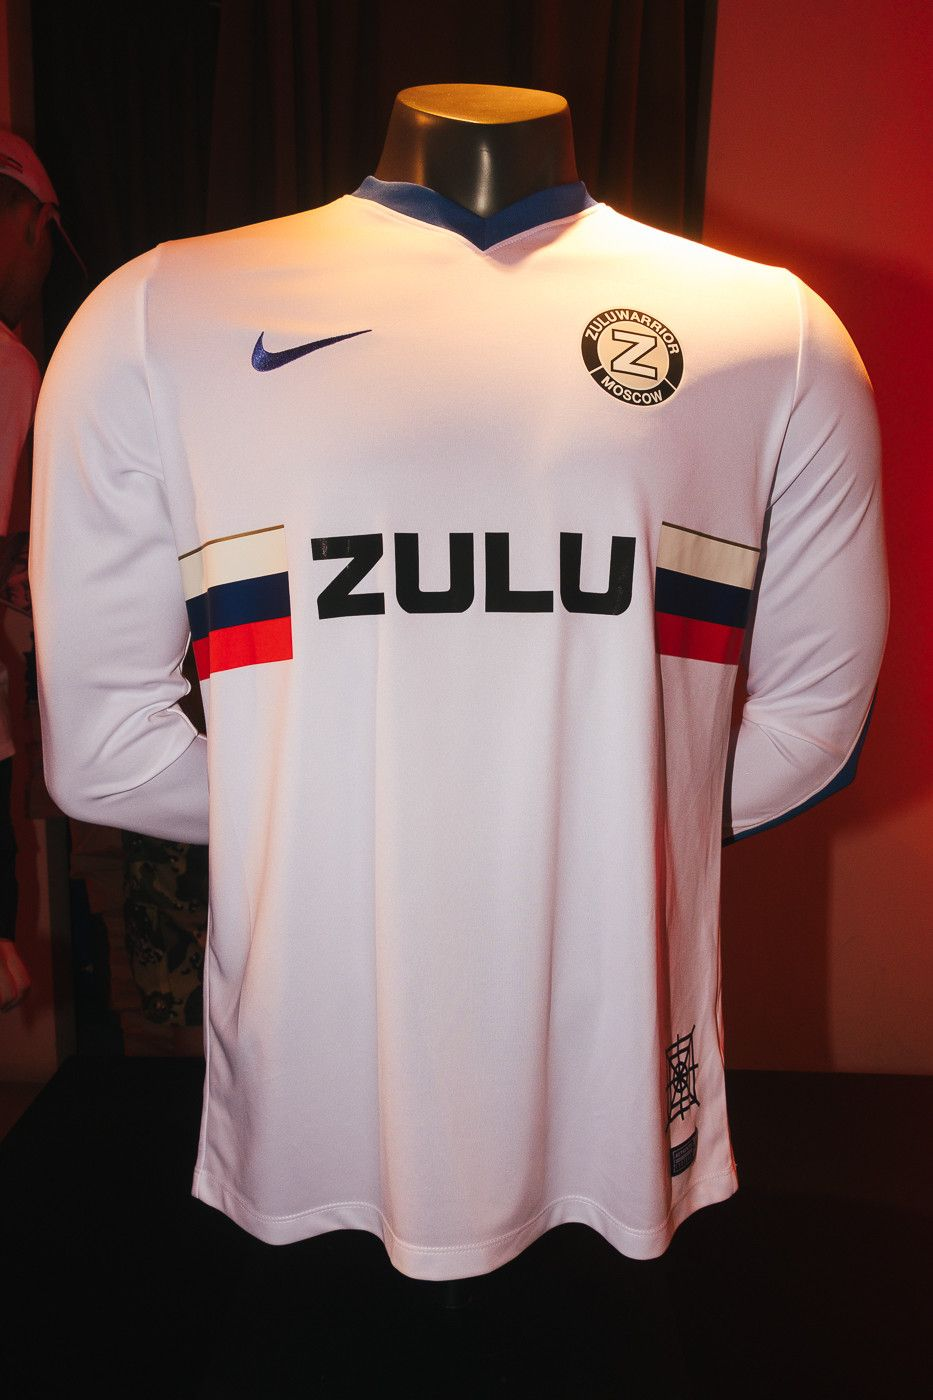 Nike Football Korobka Collection Moscow Jersey Kits Sportwear Soccer 2018 FIFA  World Cup Russia ZULUWARRIOR Sever Belief Moscow Cyber69 Fashion 7c37bb8a4